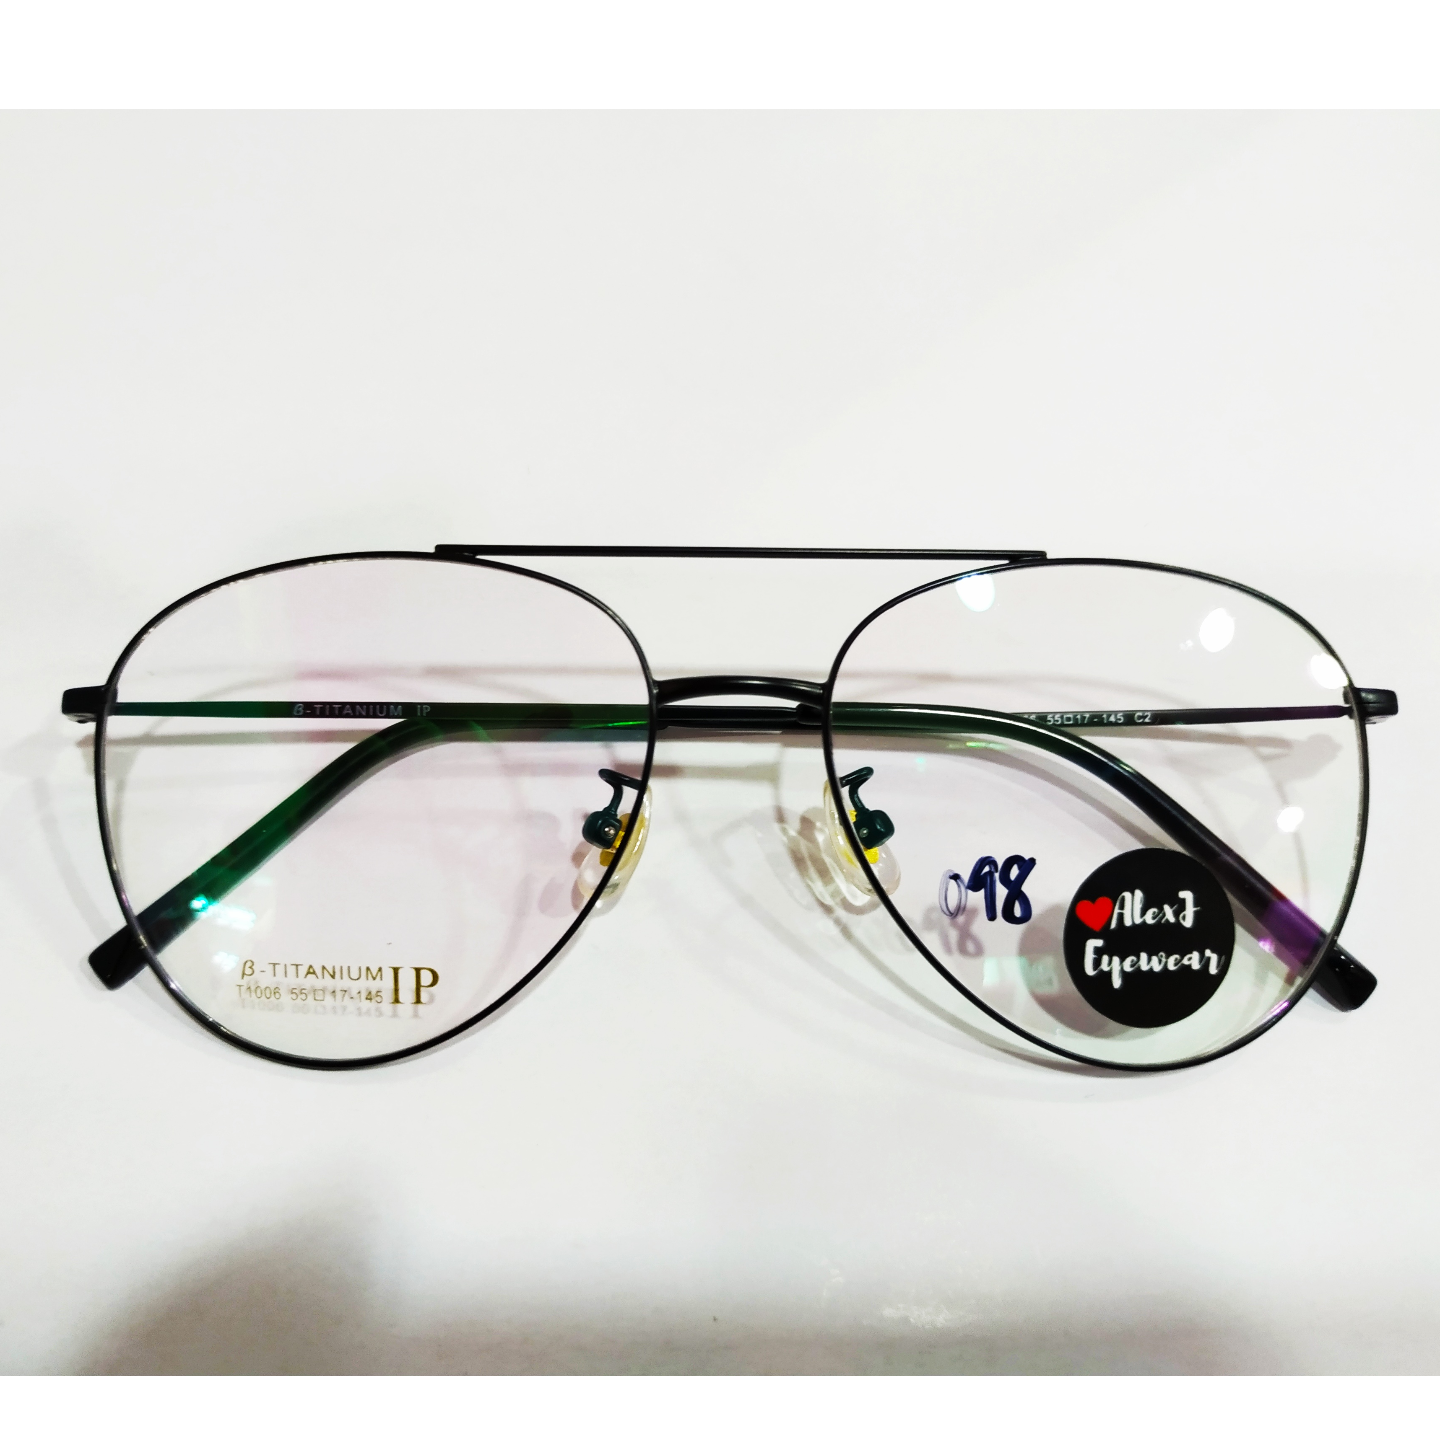 AlexJ Eyewear T1006 with cr39 1.56 mc emi